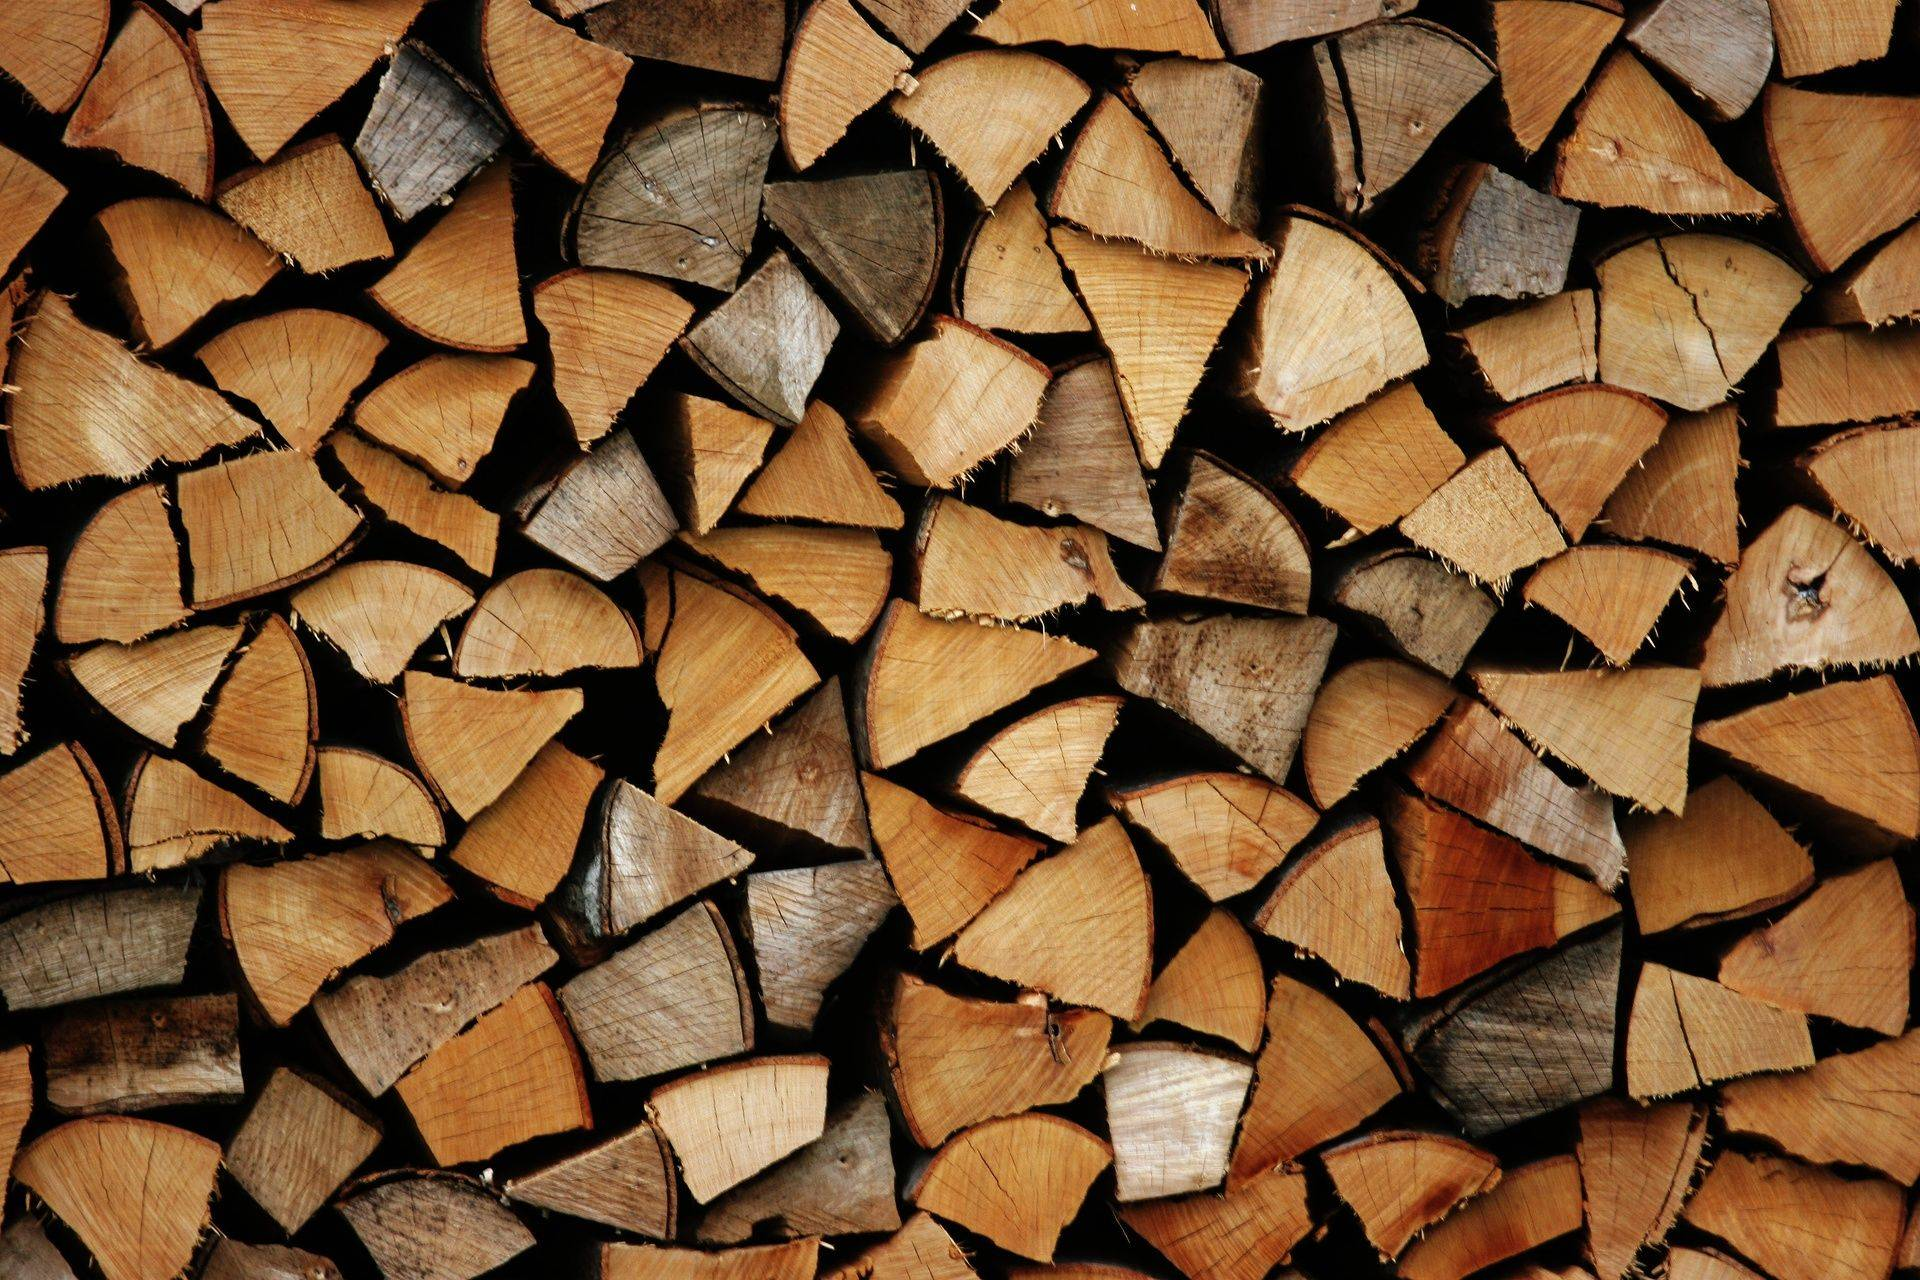 Dry, seasoned hard wood logs